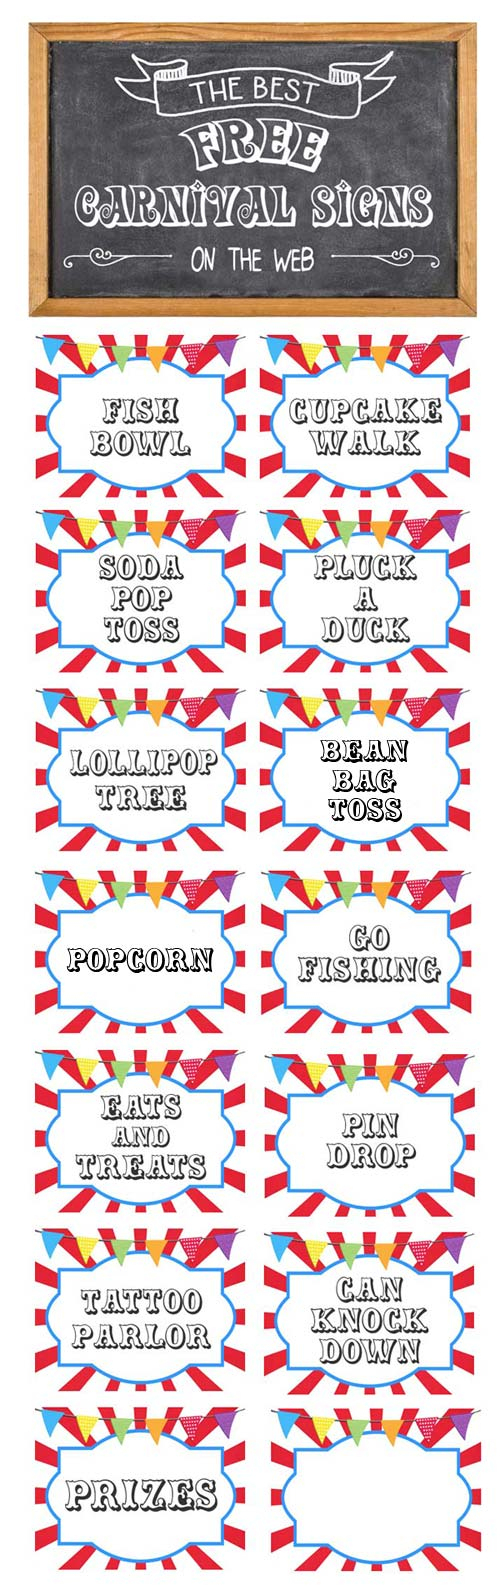 Free Printable Carnival Signs - Free Printable Carnival Signs